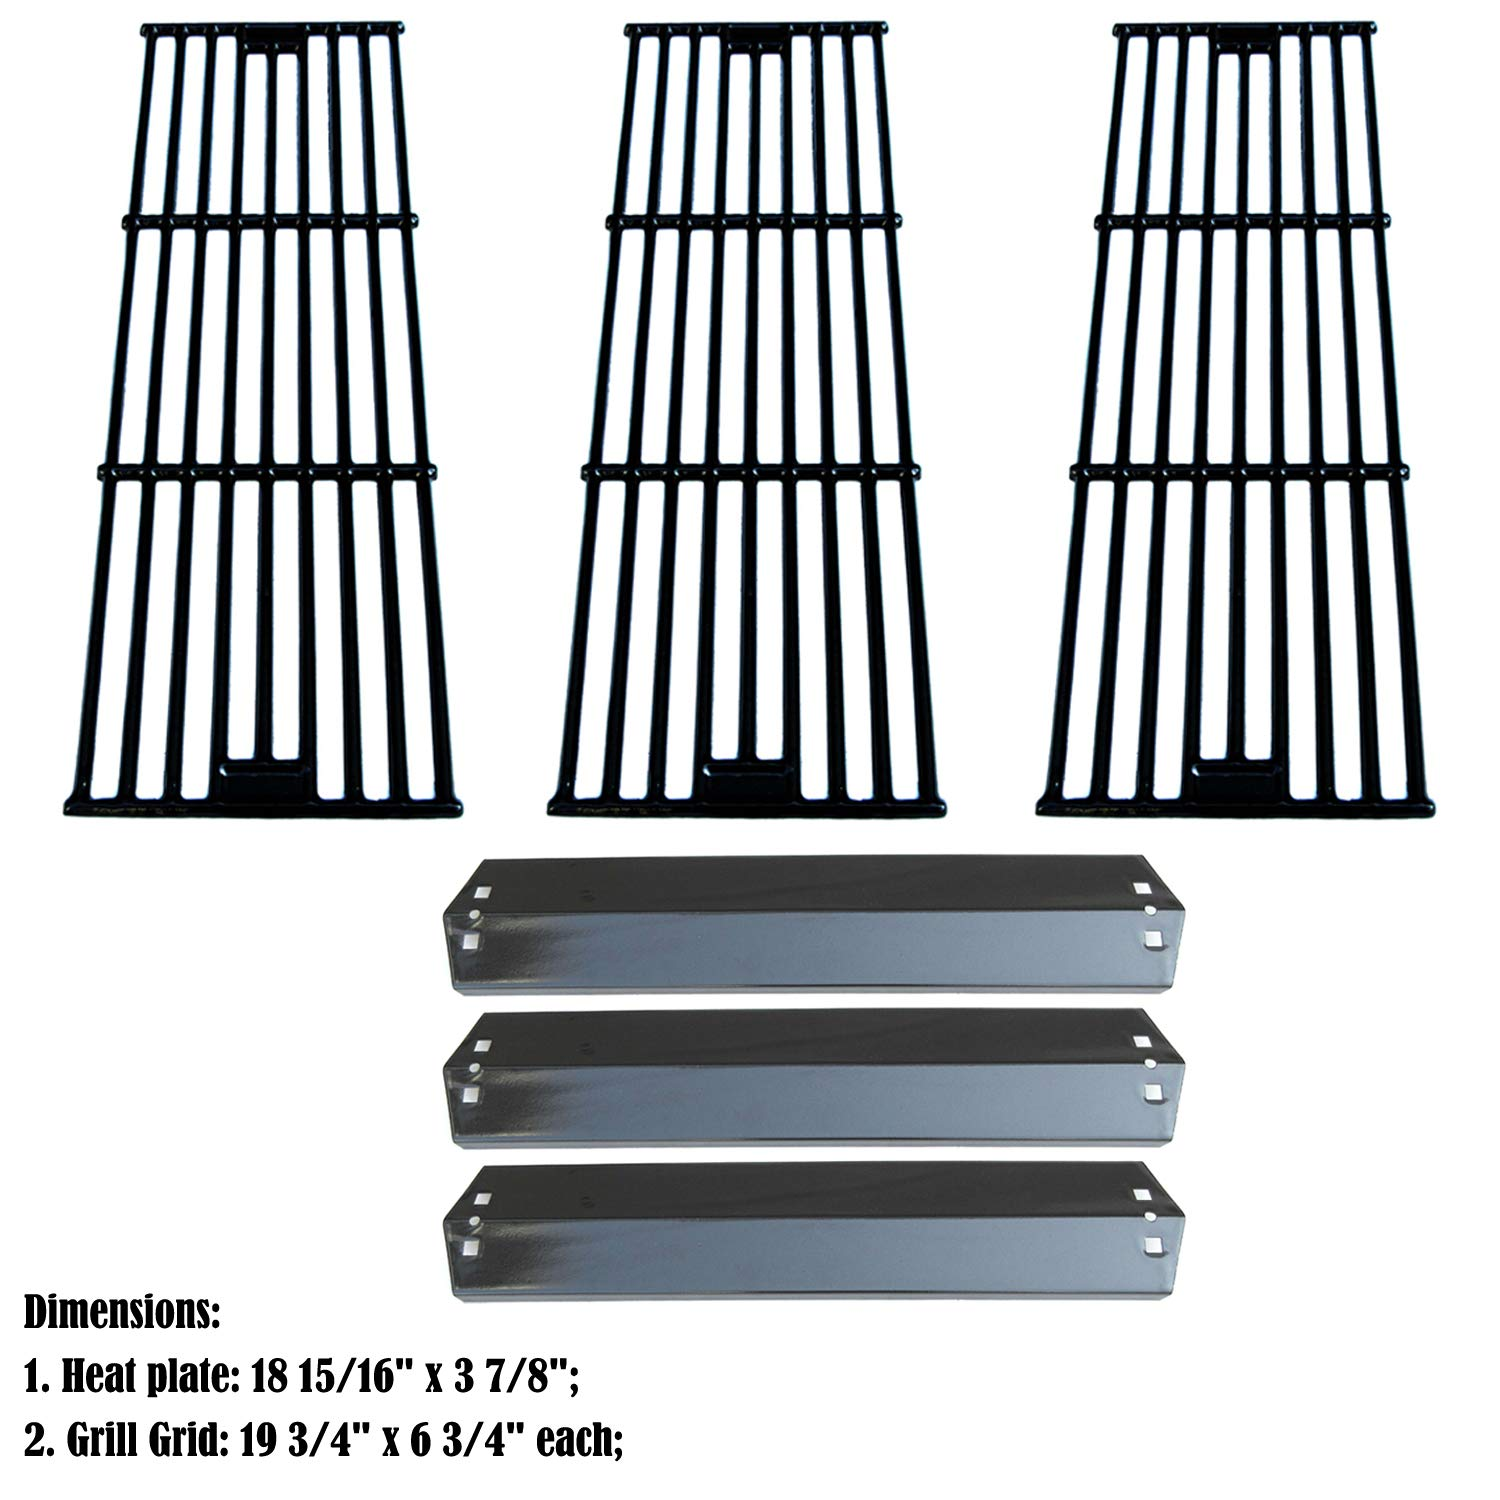 Direct Store Parts Kit DG234 Replacement for Chargriller 3001,3008,3030,40,00, 5050,5252; King Griller 3008,5252 Gas Grill (Porcelain Steel Heat Plates + Porcelain Cast Iron Cooking Grid) by Direct Store